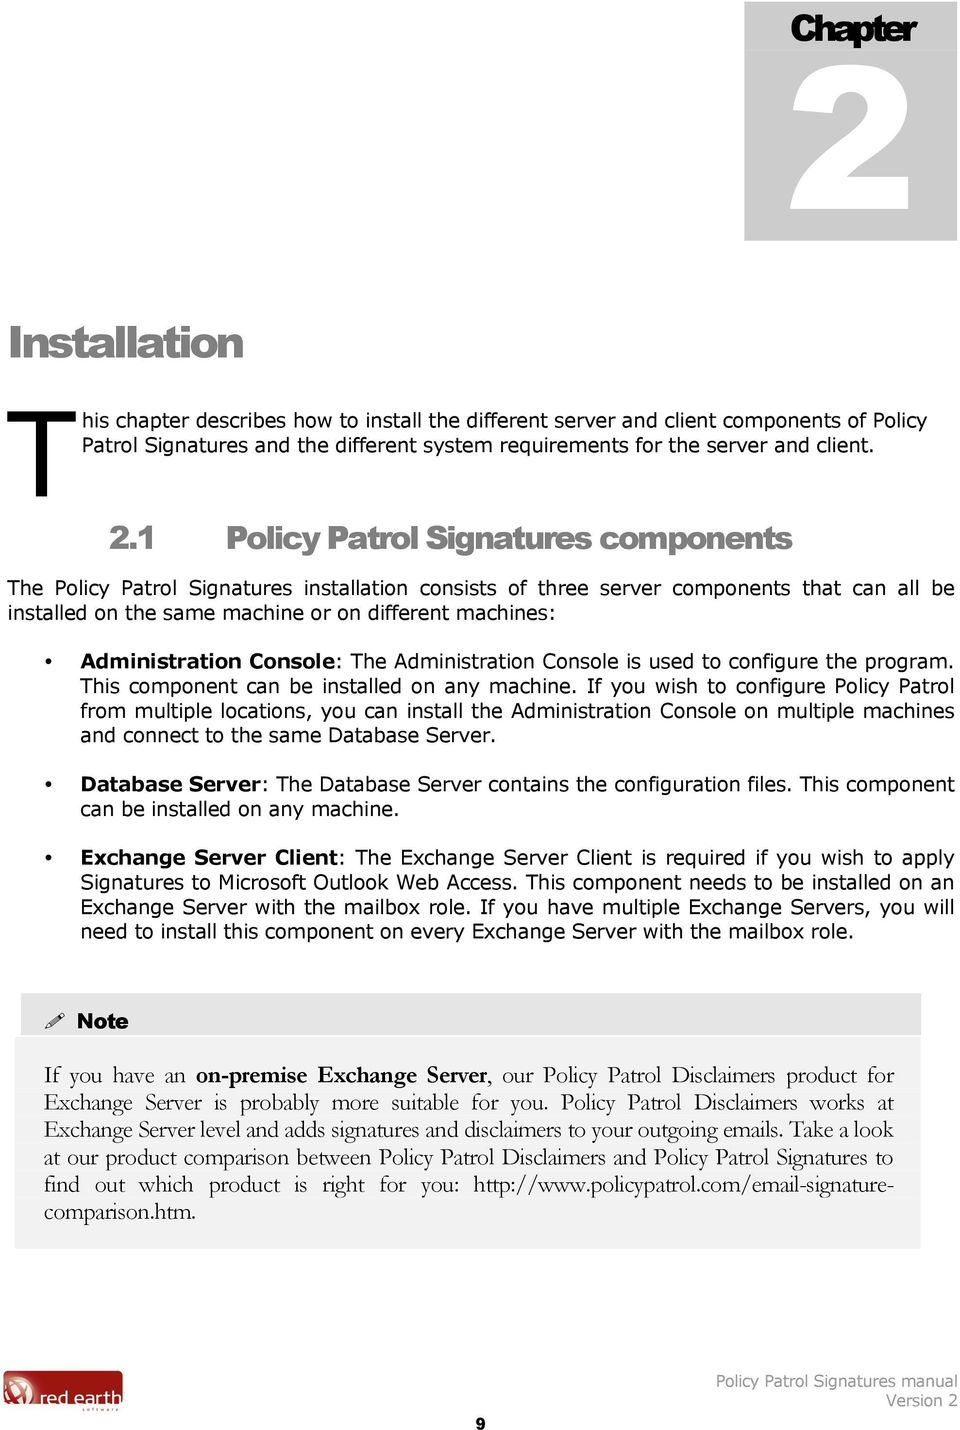 1 Policy Patrol Signatures components The Policy Patrol Signatures installation consists of three server components that can all be installed on the same machine or on different machines: